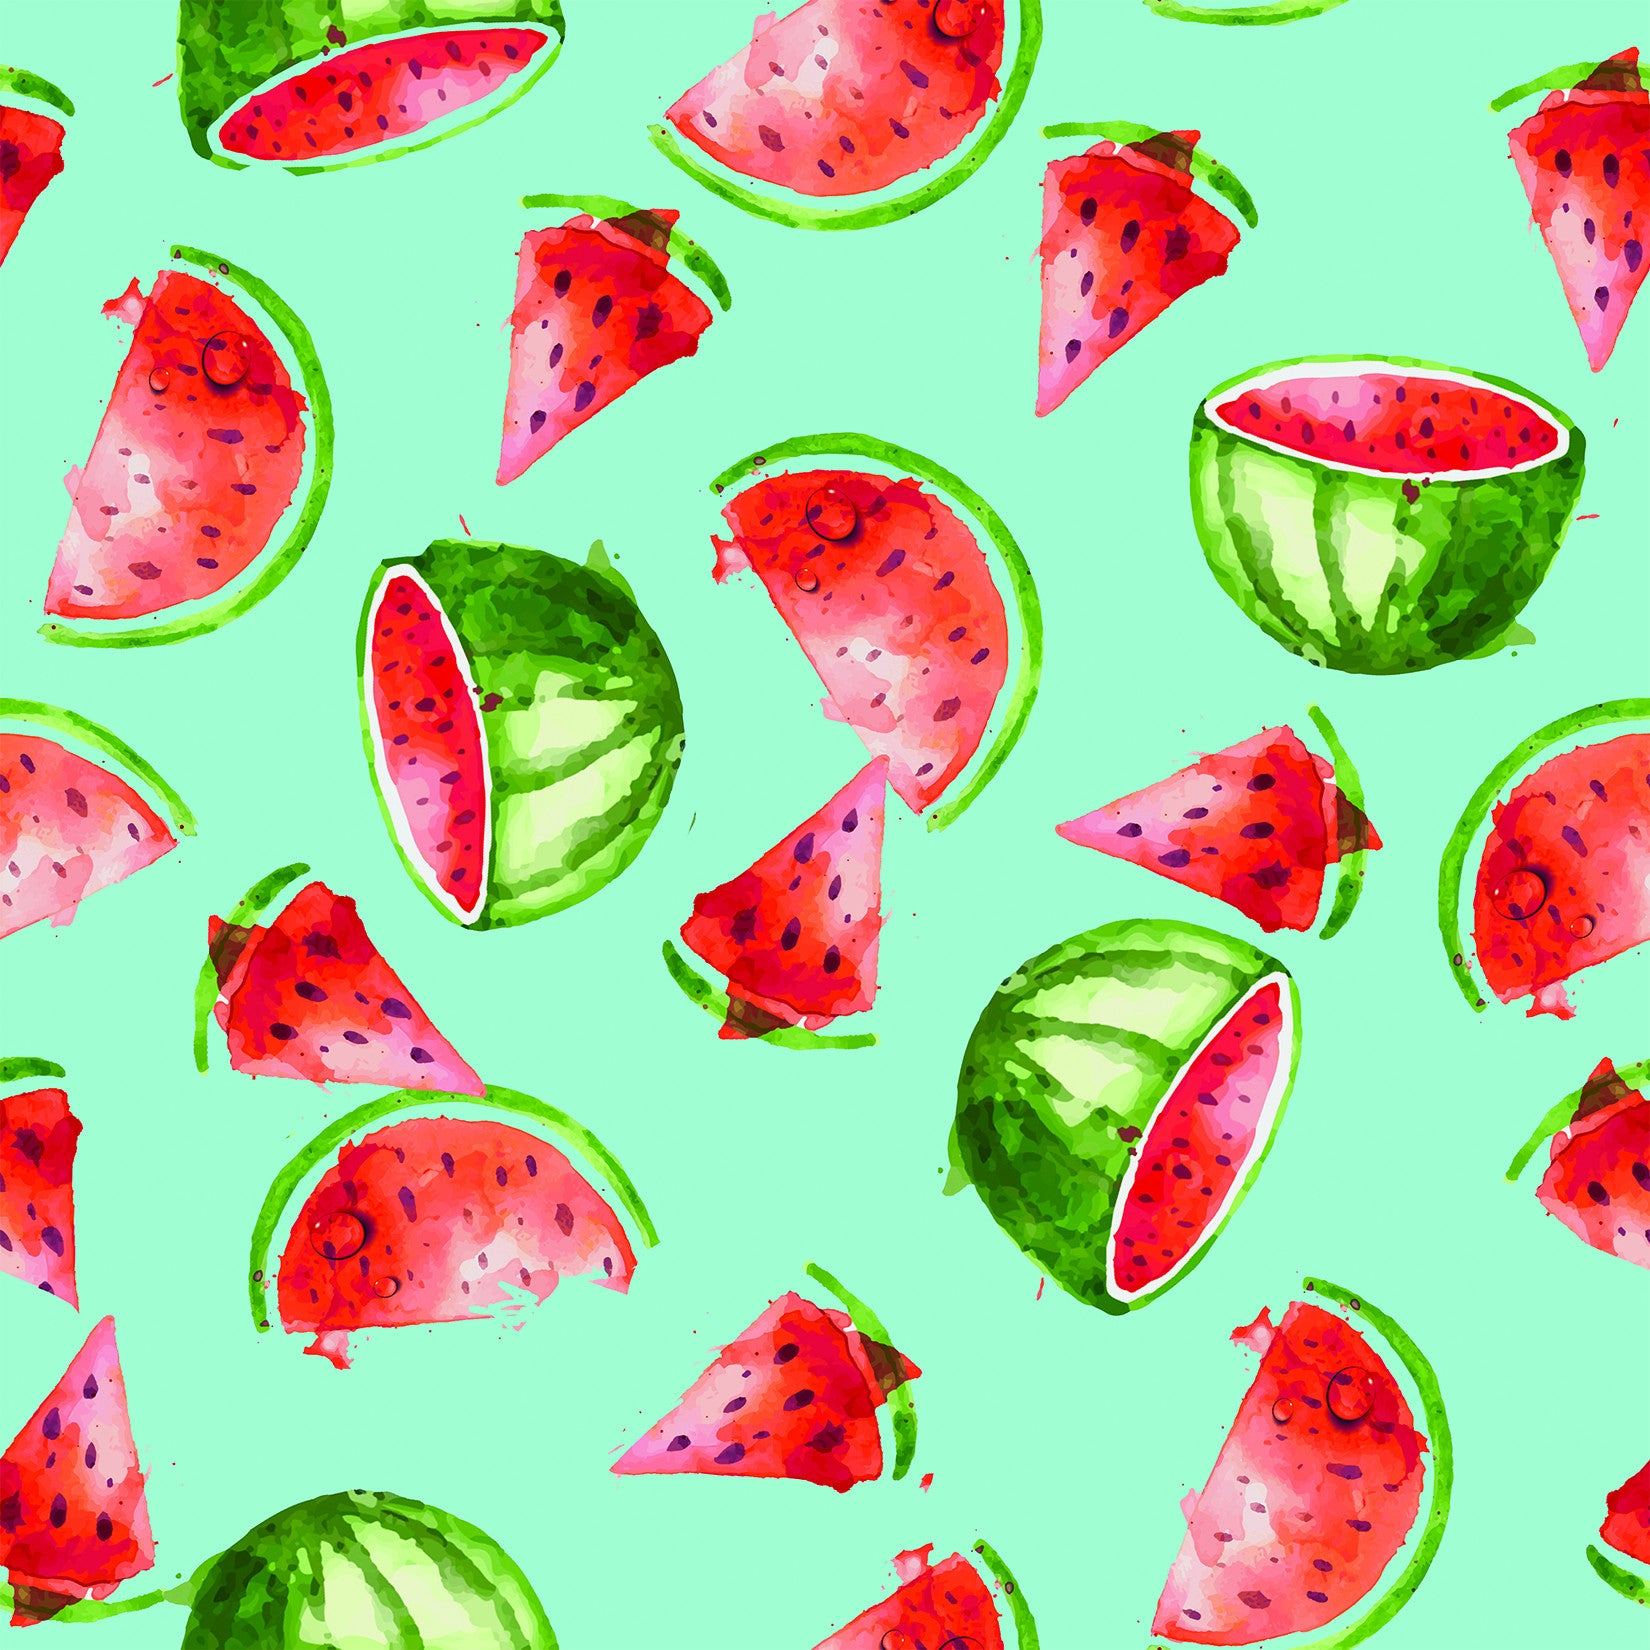 Stitch & Sparkle Fabrics, Fruity, Cool Watermelon  Cotton Fabrics,  Quilt, Crafts, Sewing, Cut By The Yard